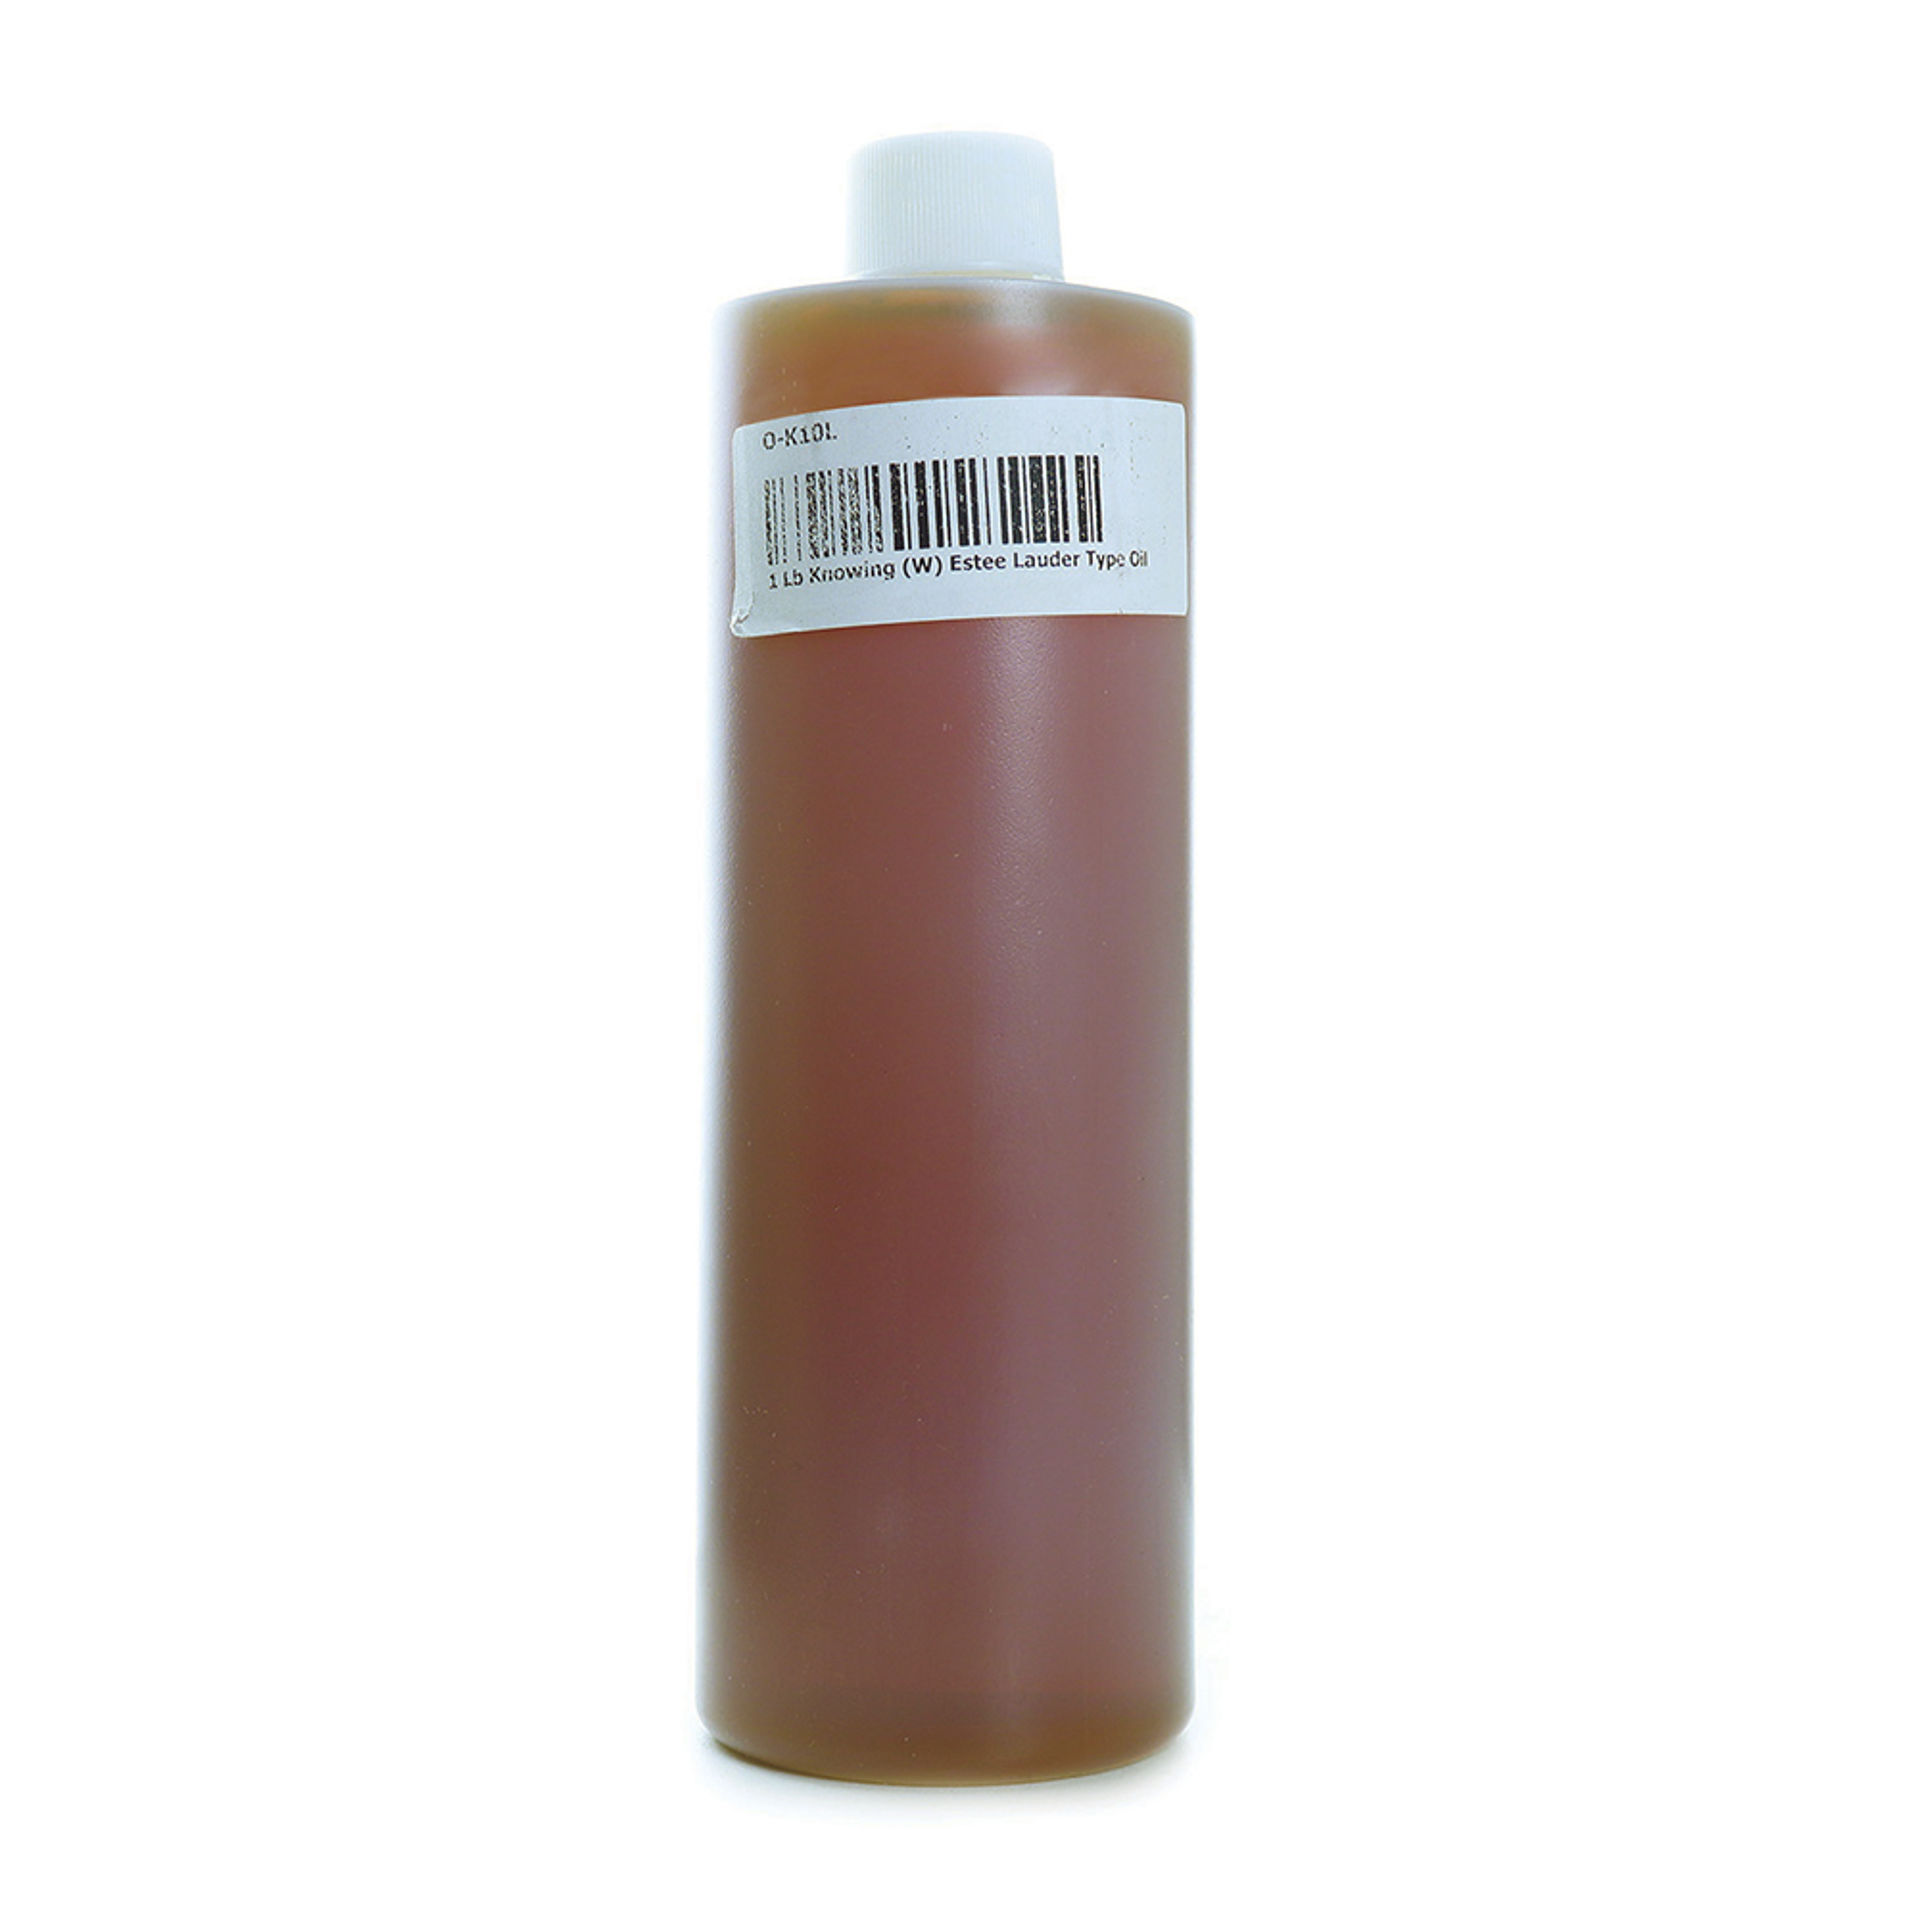 Picture of 1 Lb Knowing (W) Estee Lauder Type Oil